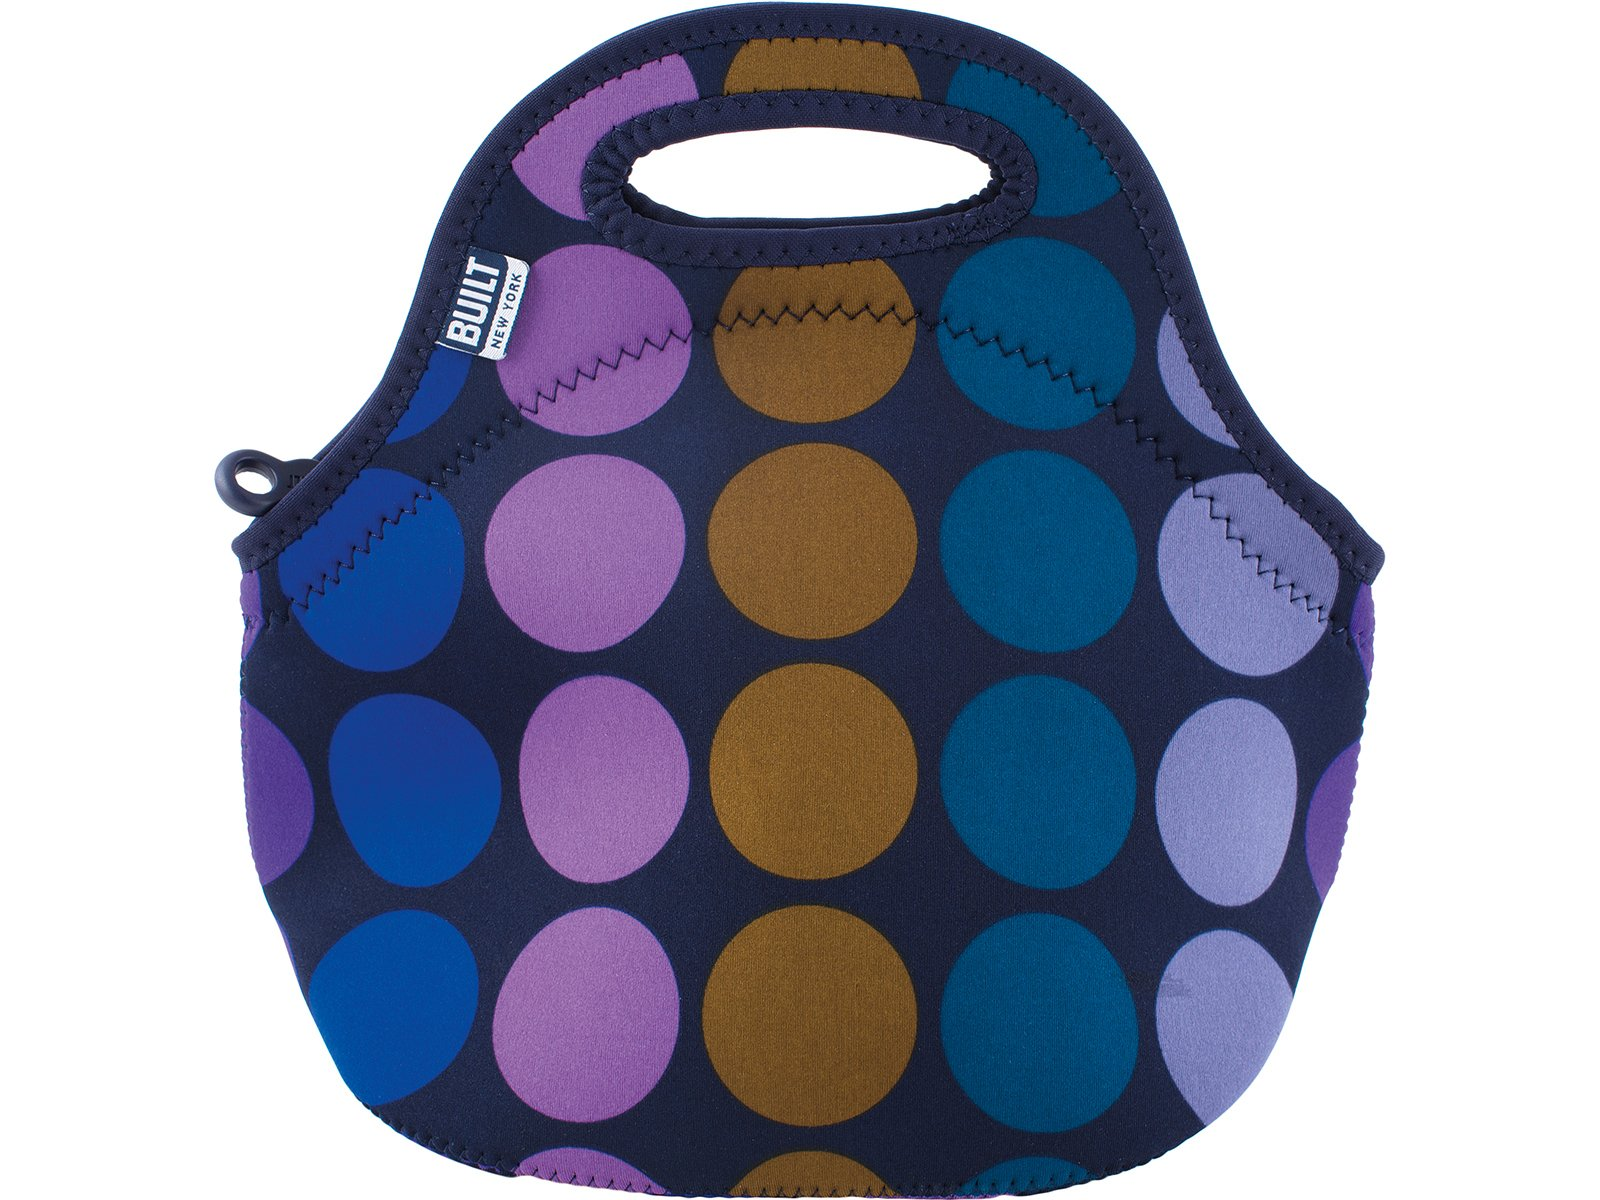 BUILT Gourmet Getaway Mini Soft Neoprene Lunch Tote Bag-Lightweight, Insulated and Reusable, 1 EA, Plum Dot